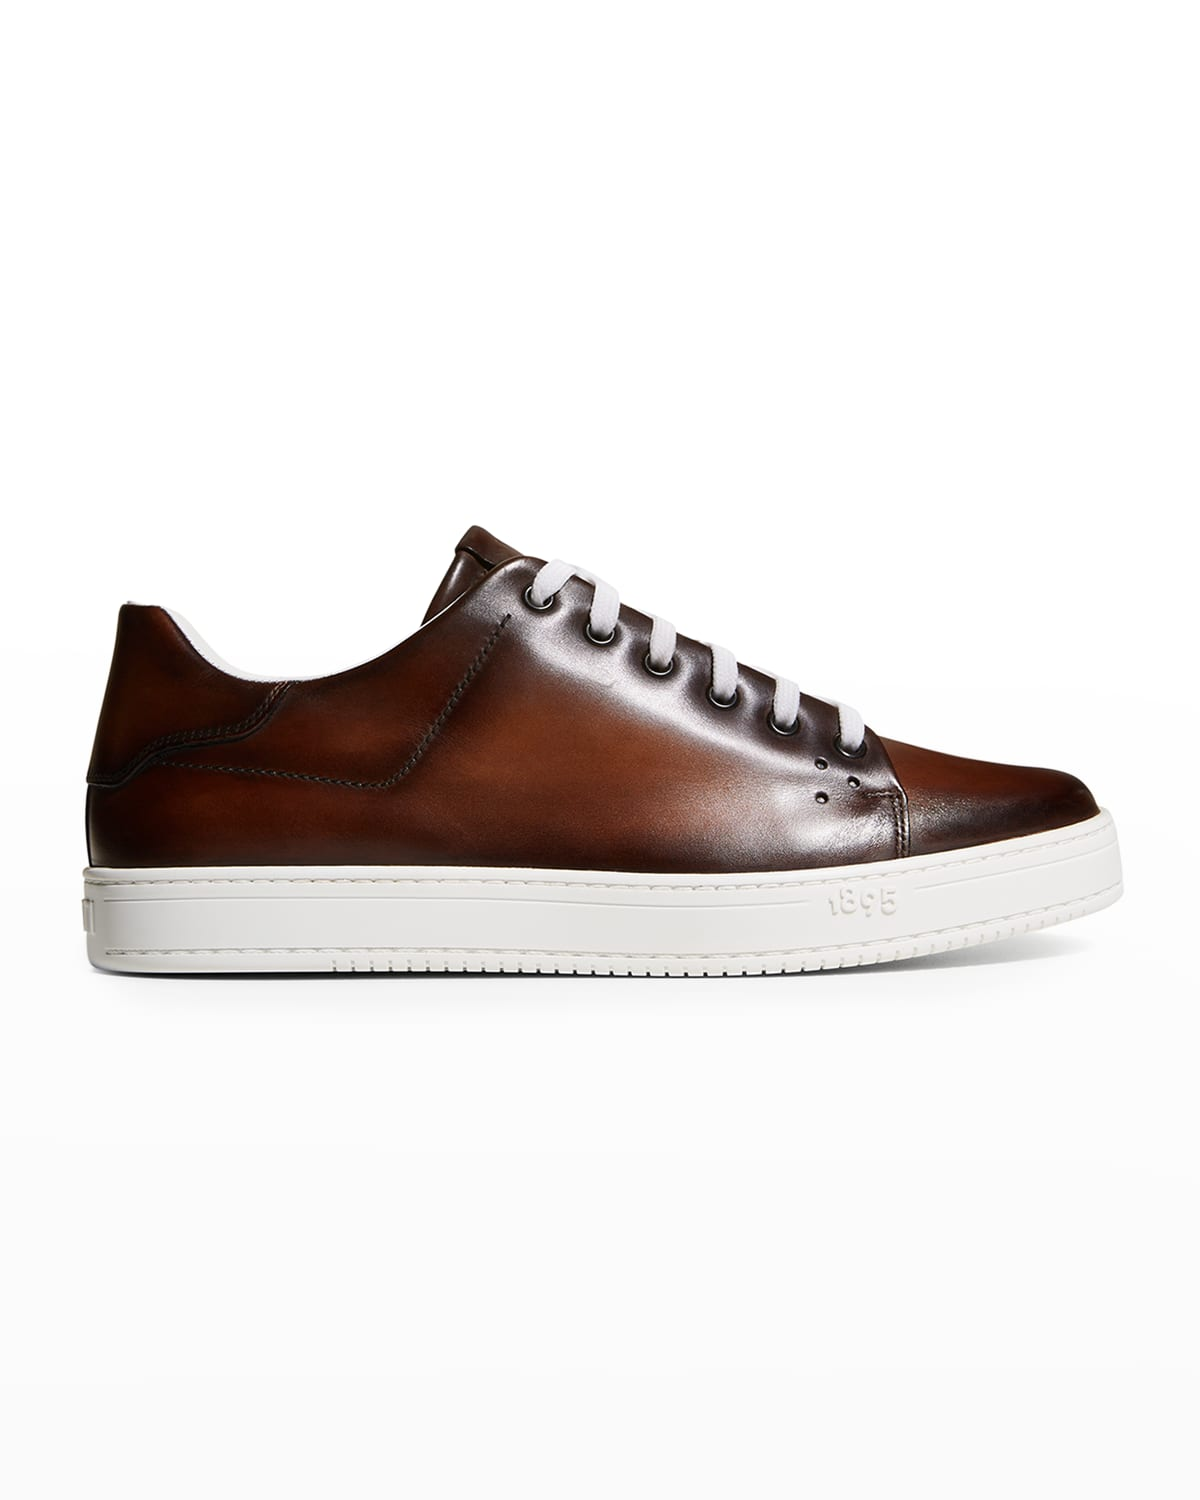 Men's Burnished Leather Low-Top Sneakers